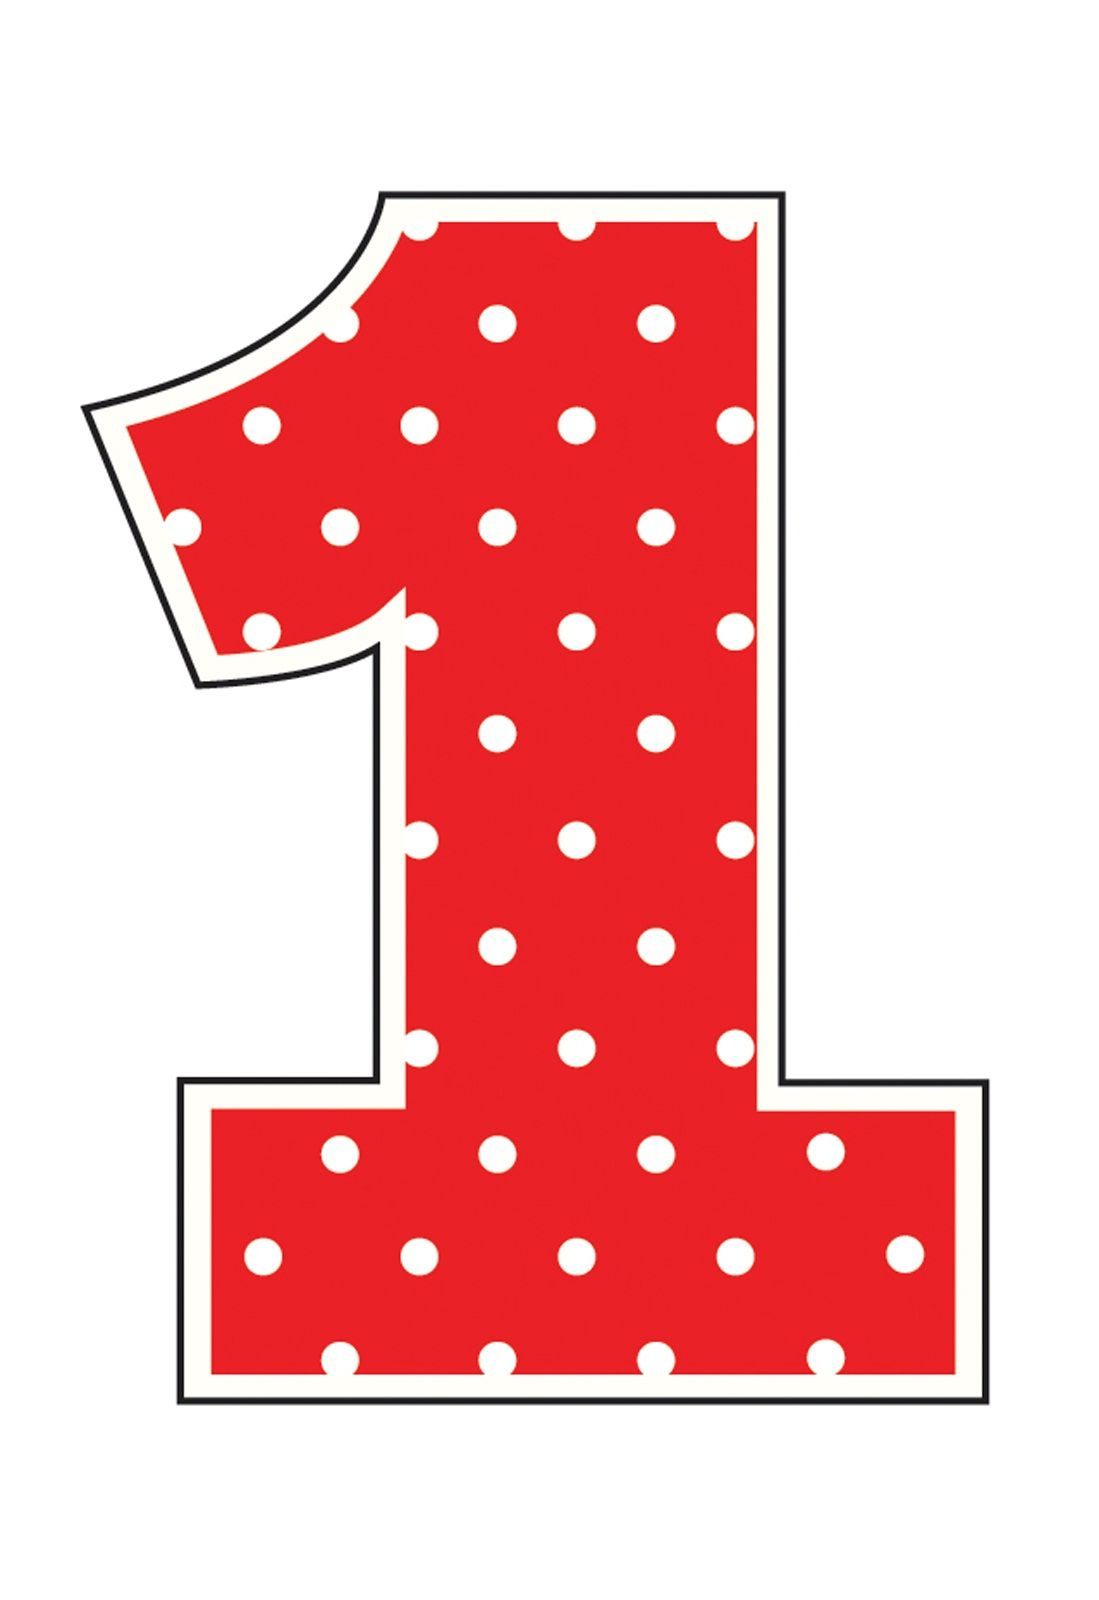 Picture of Number 1 Printable | Alphabet and Numbers Learning | Ladybug party supplies, Happy ...